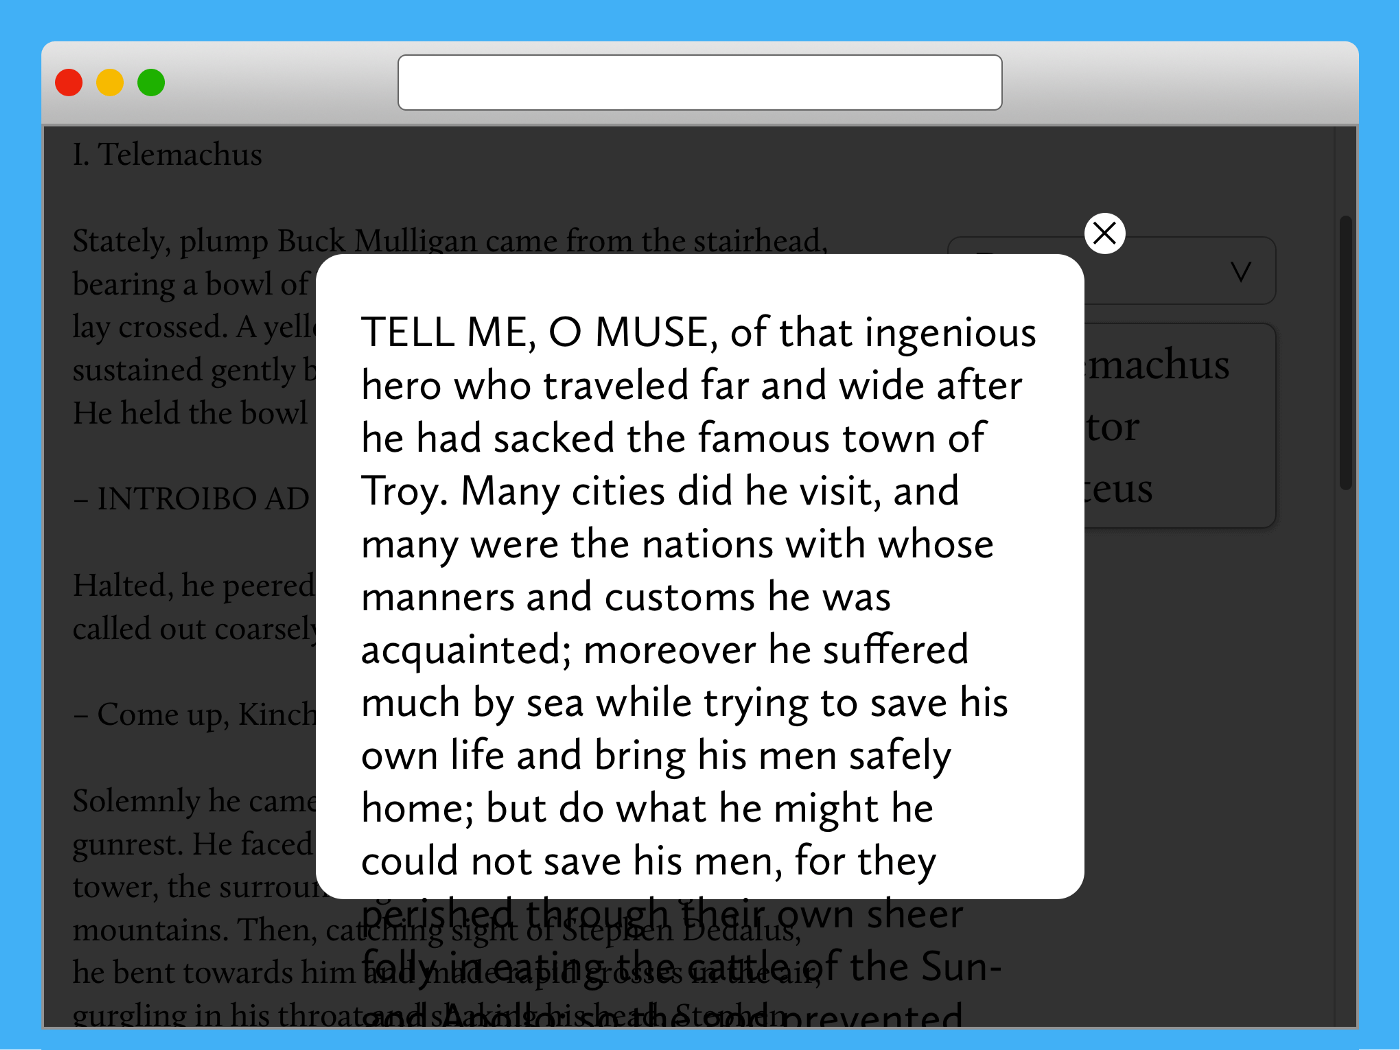 4. Text falls out the pop-up area